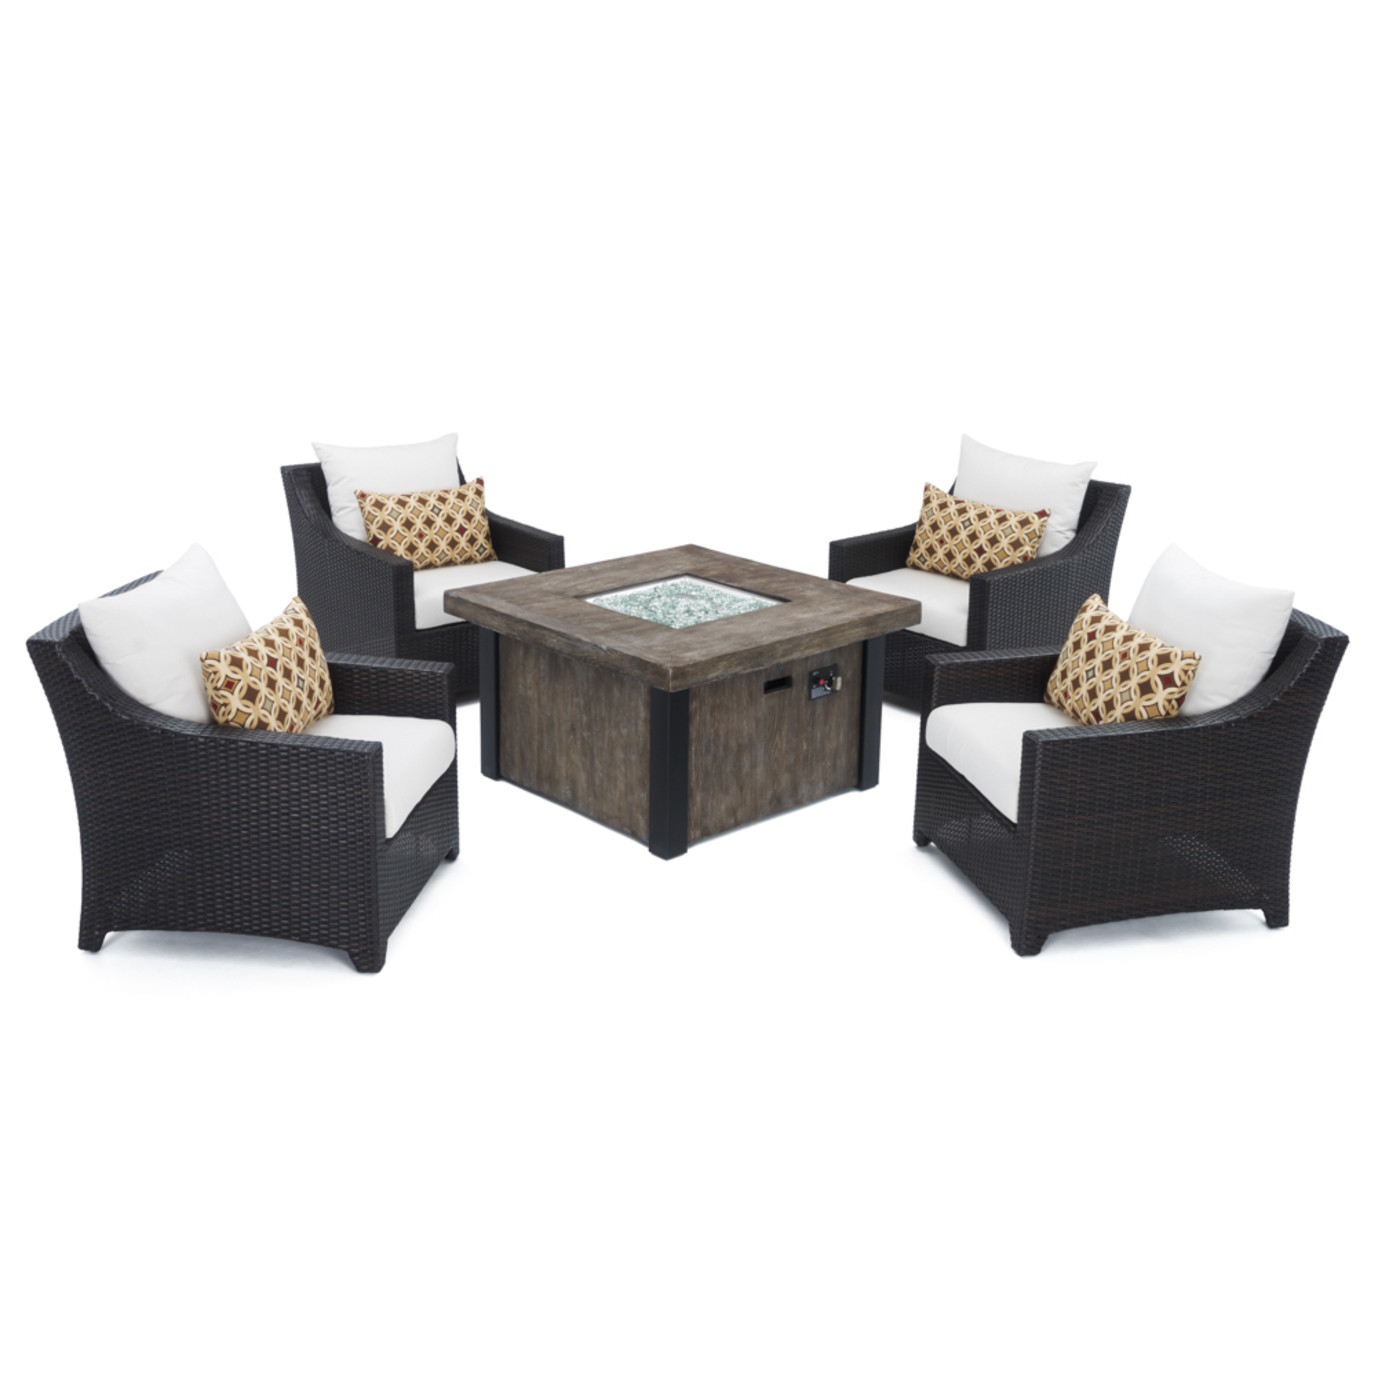 Deco™ 5pc Fire Chat Set- Moroccan Cream